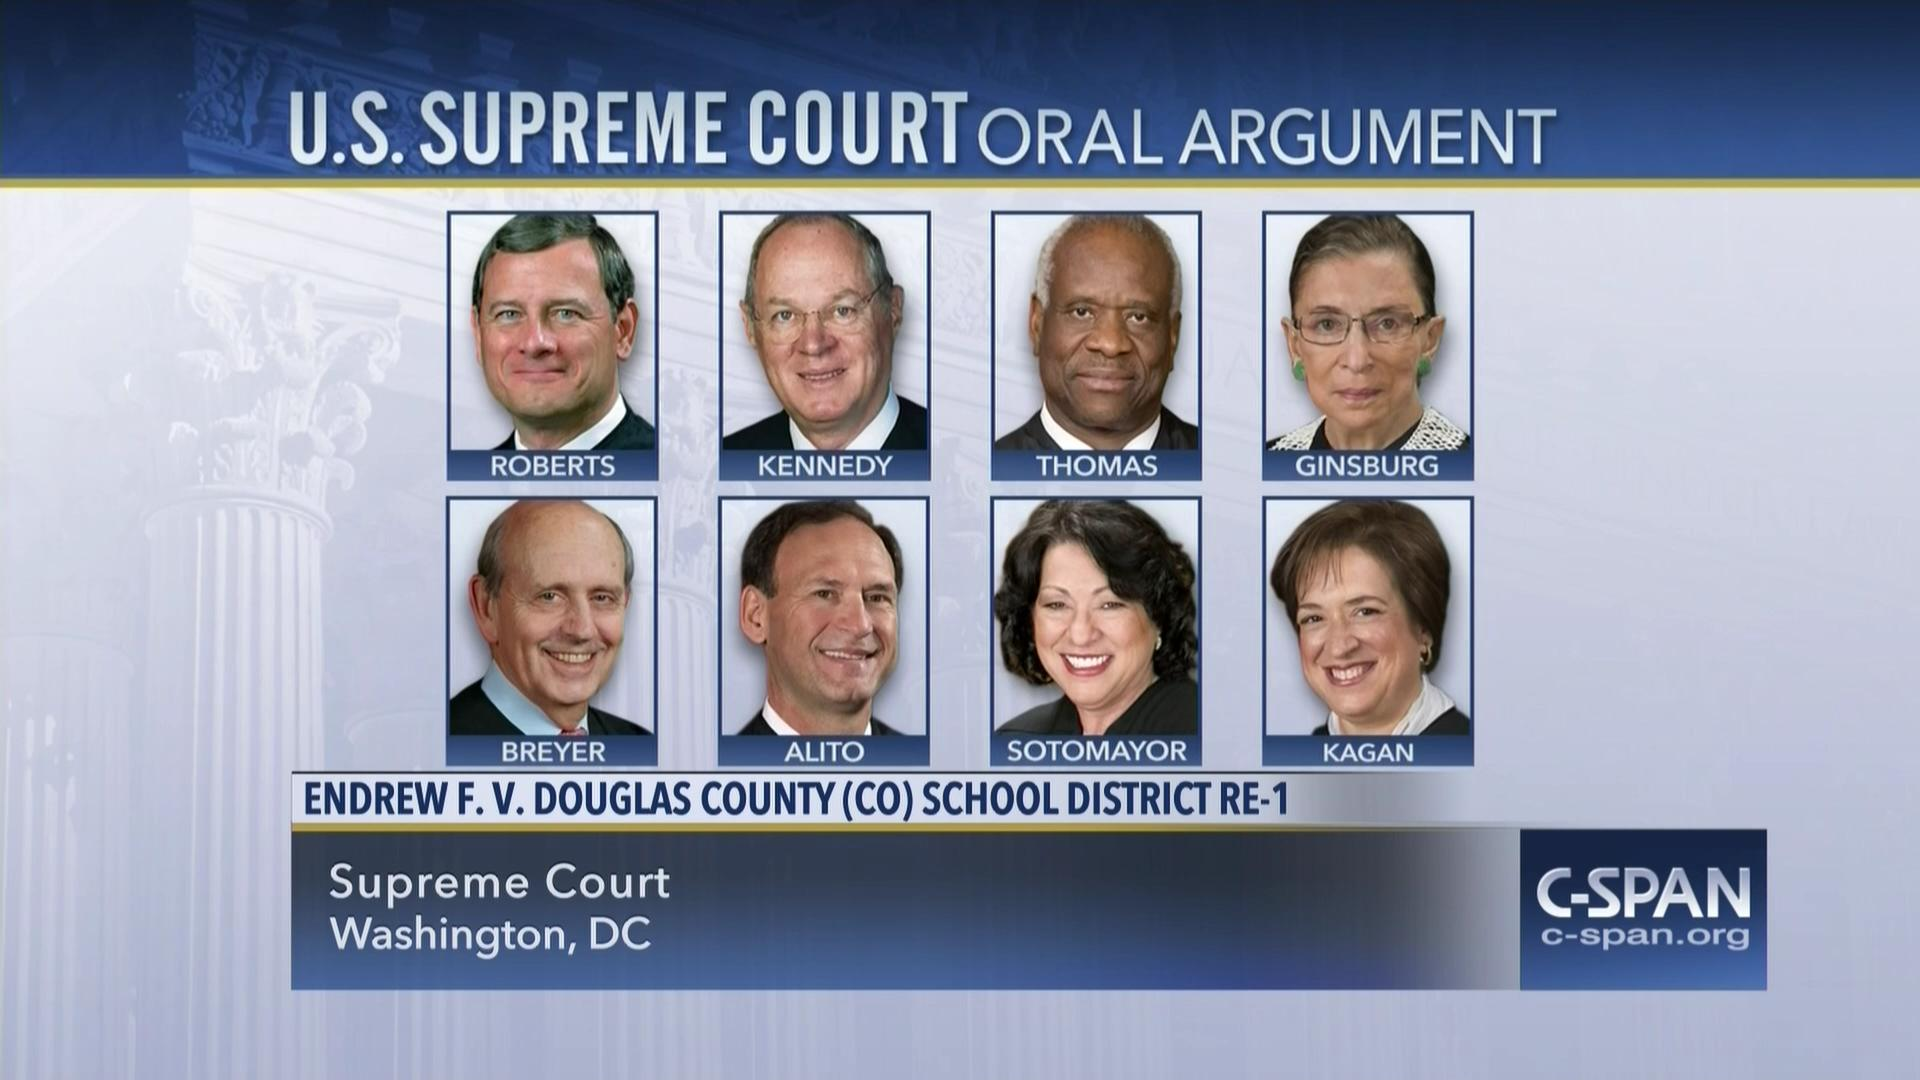 Who Won Endrew F >> Endrew F V Douglas City School District Oral Argument C Span Org